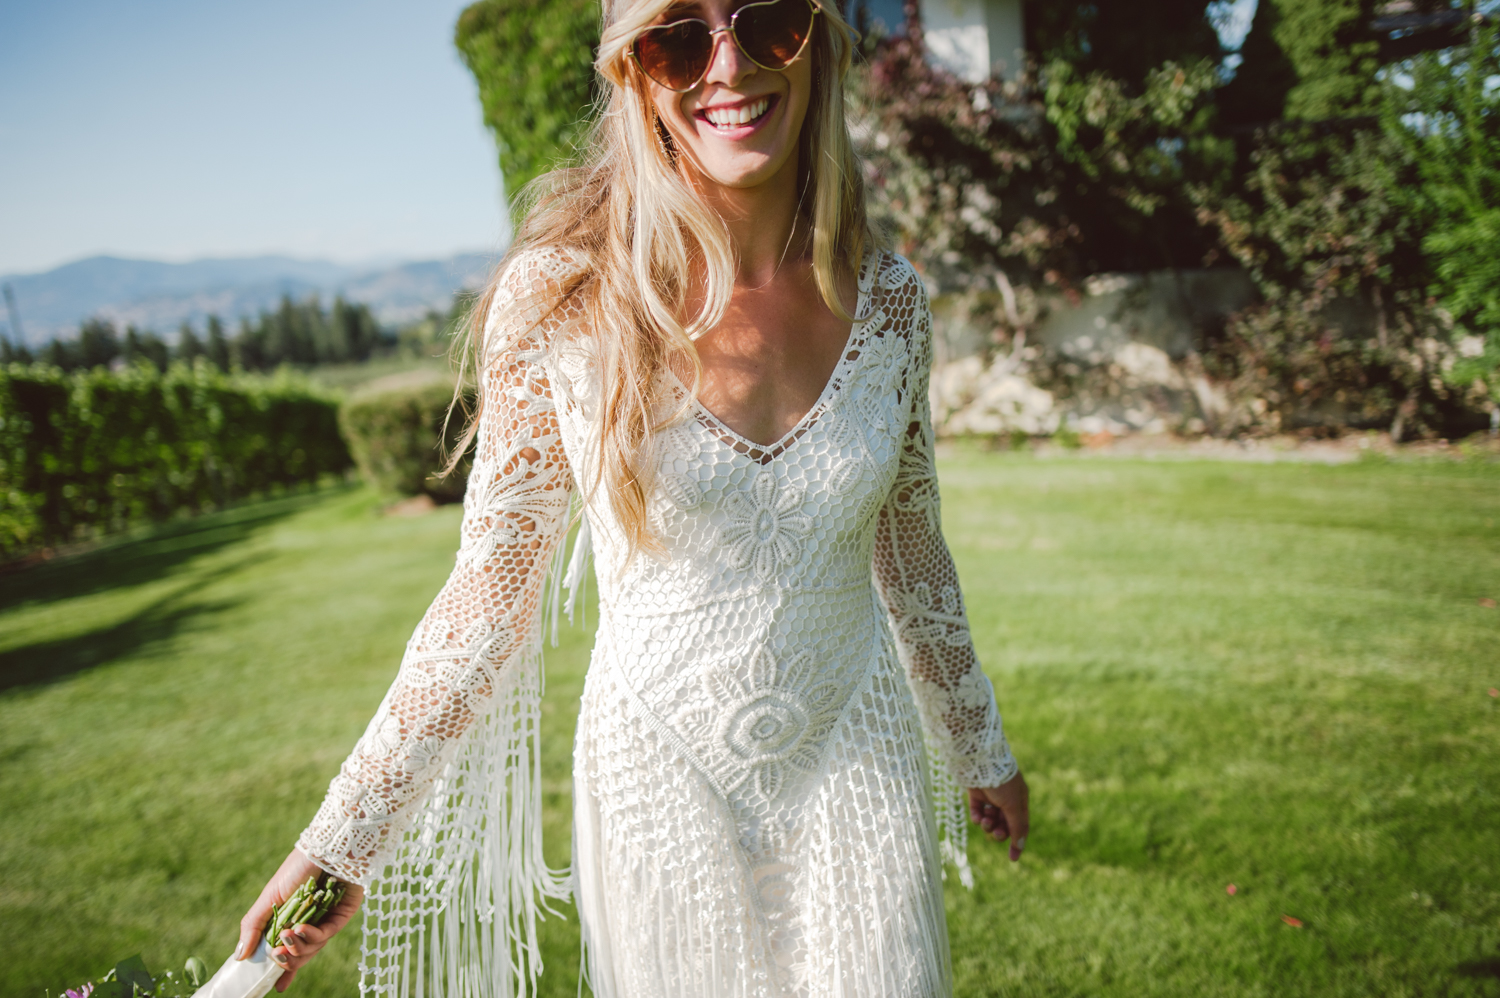 Kelowna Summer modern boho wedding-jessika hunter photo-17.JPG